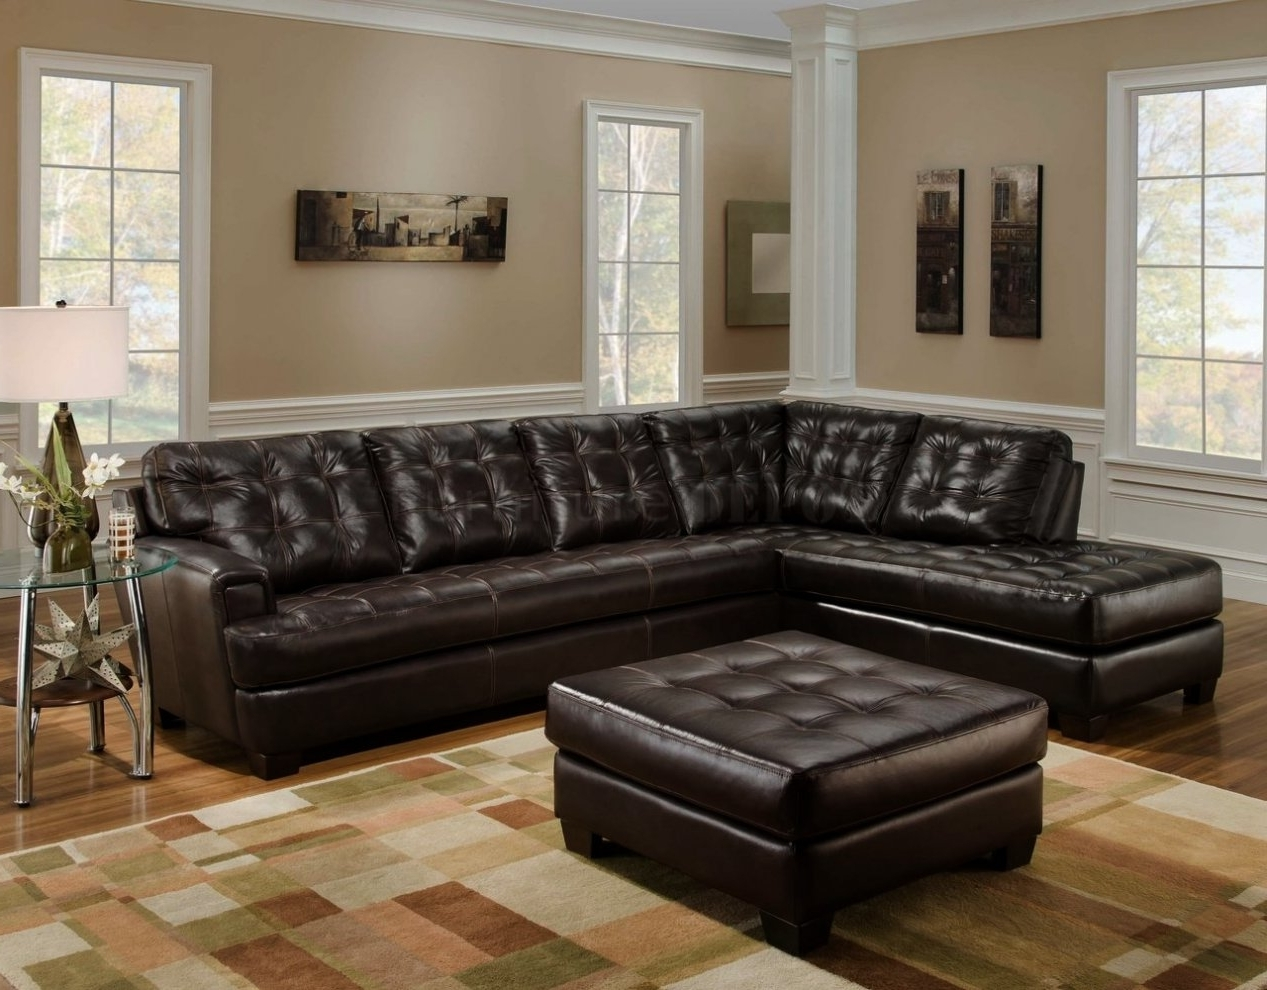 Dark Brown Leather Tufted Sectional Chaise Lounge Sofa With Pertaining To Recent Leather Sectionals With Chaise (View 5 of 15)